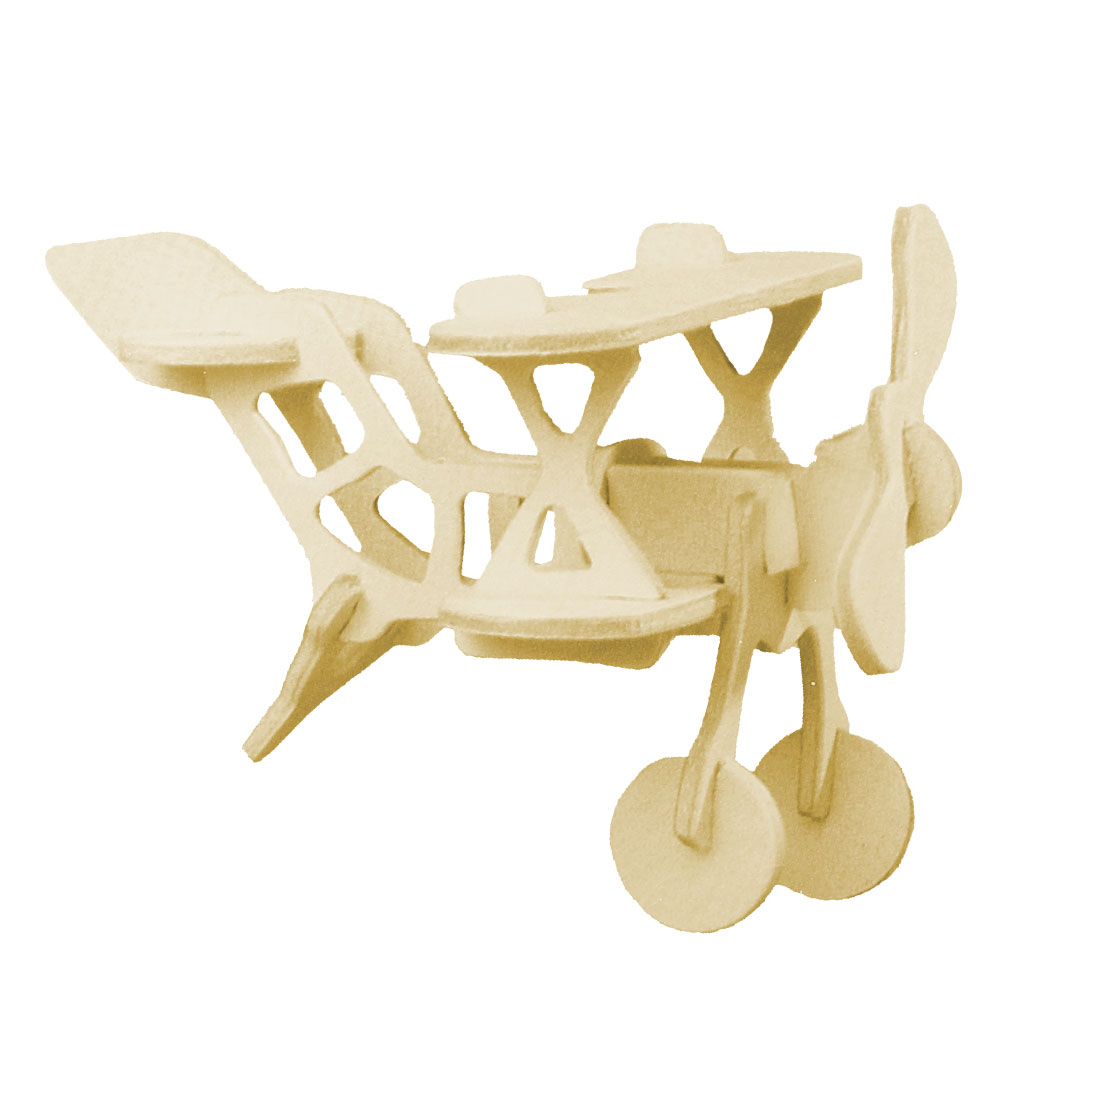 DIY Wooden Biplane Model 3D Puzzle Toy Woodcraft Construction Kit for Child